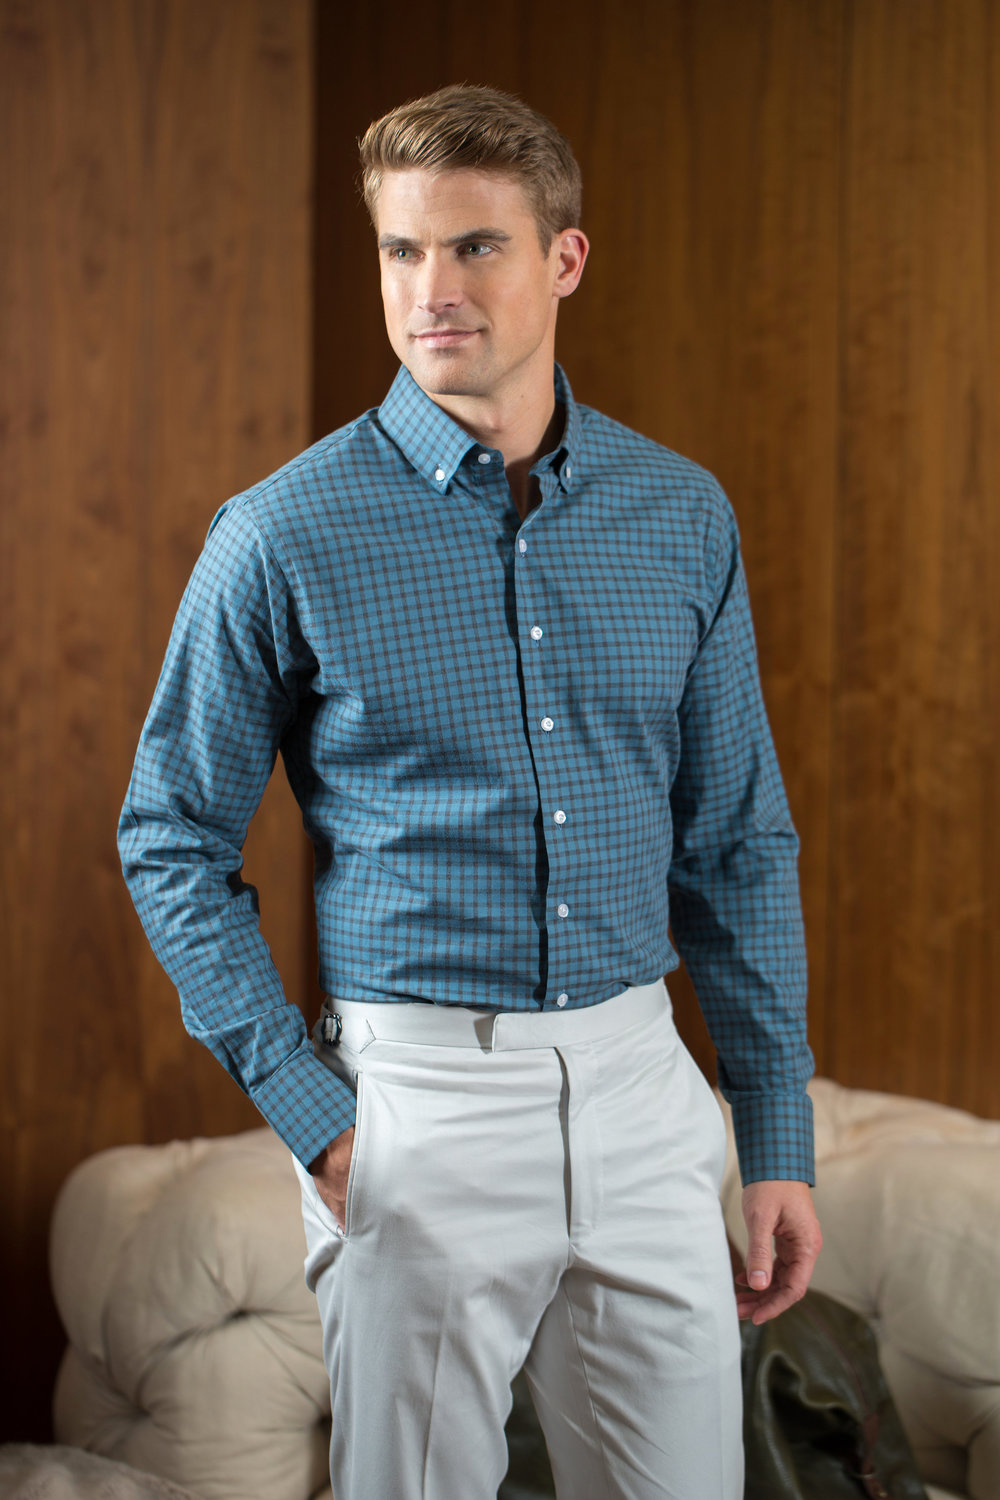 Balani_Custom_Tailored_Teal_Check_Buttondown_Shirt_Khaki_Pants_Custom_Bespoke_Chicago.jpg